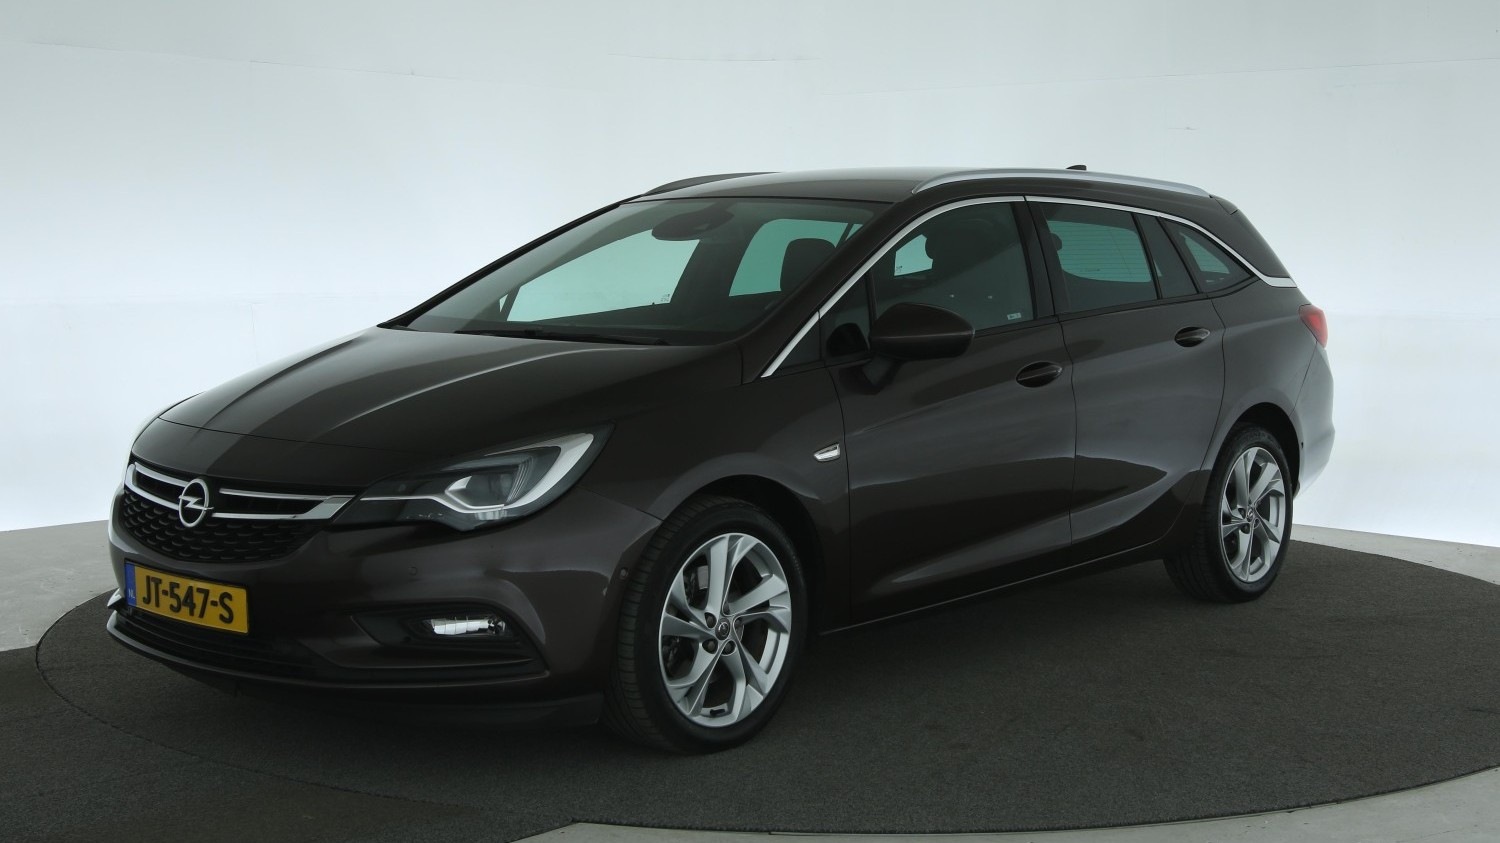 Opel Astra Station 2016 JT-547-S 1